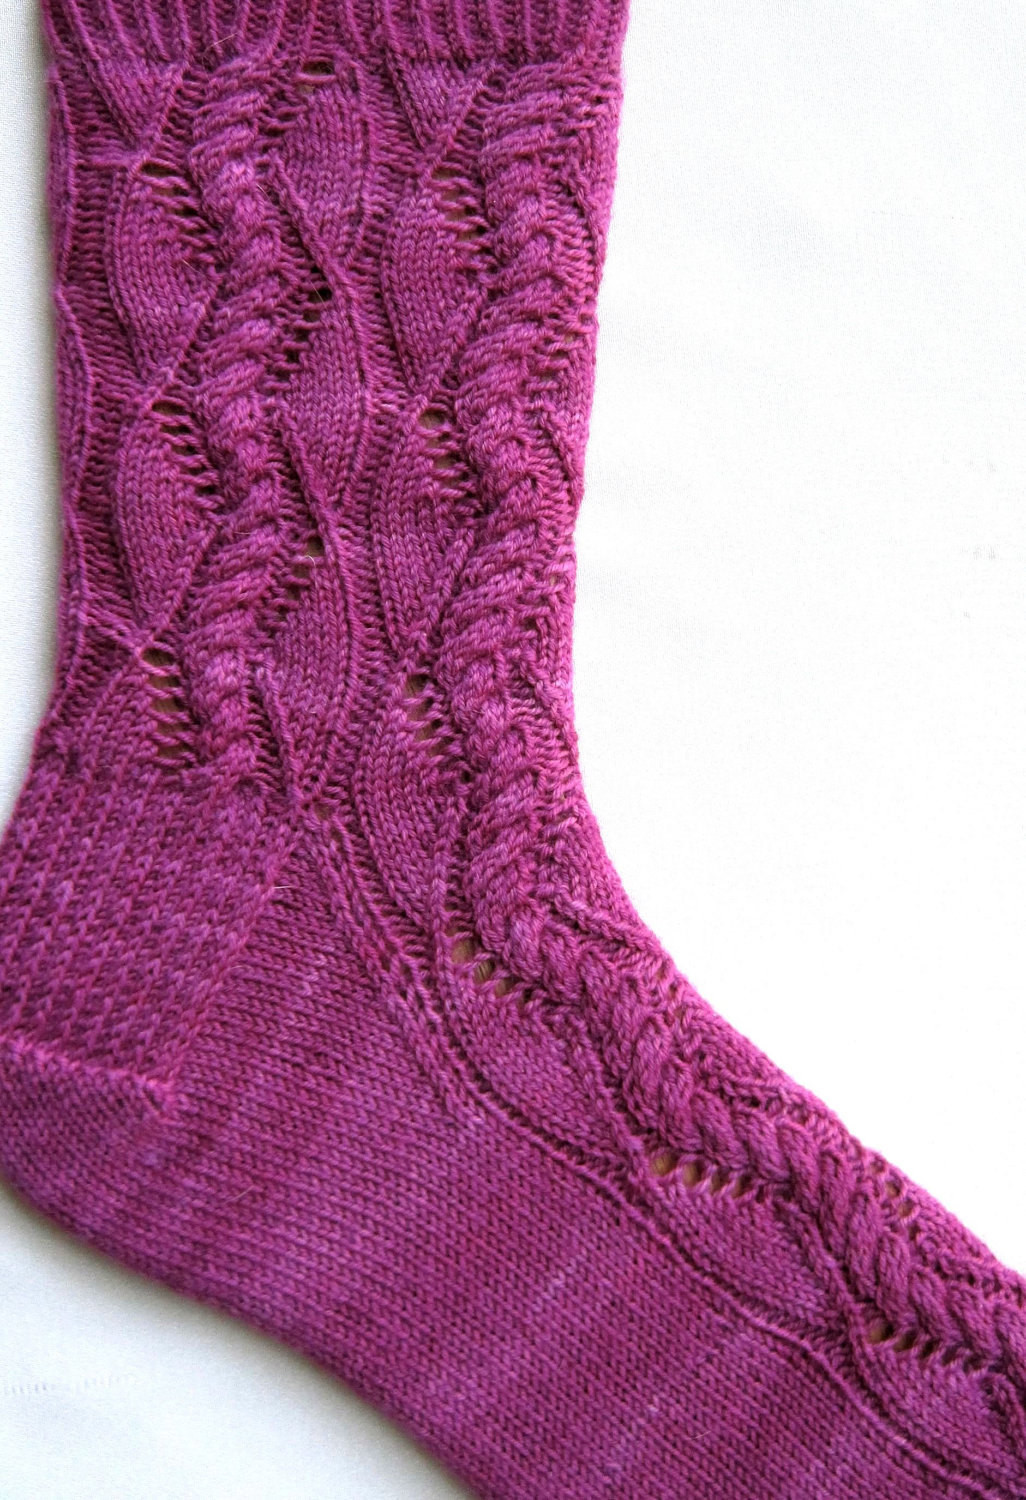 Sock Knitting Pattern Luxury Knit sock Pattern Cable Lace Waves sock Knitting Pattern Of Unique 41 Photos sock Knitting Pattern